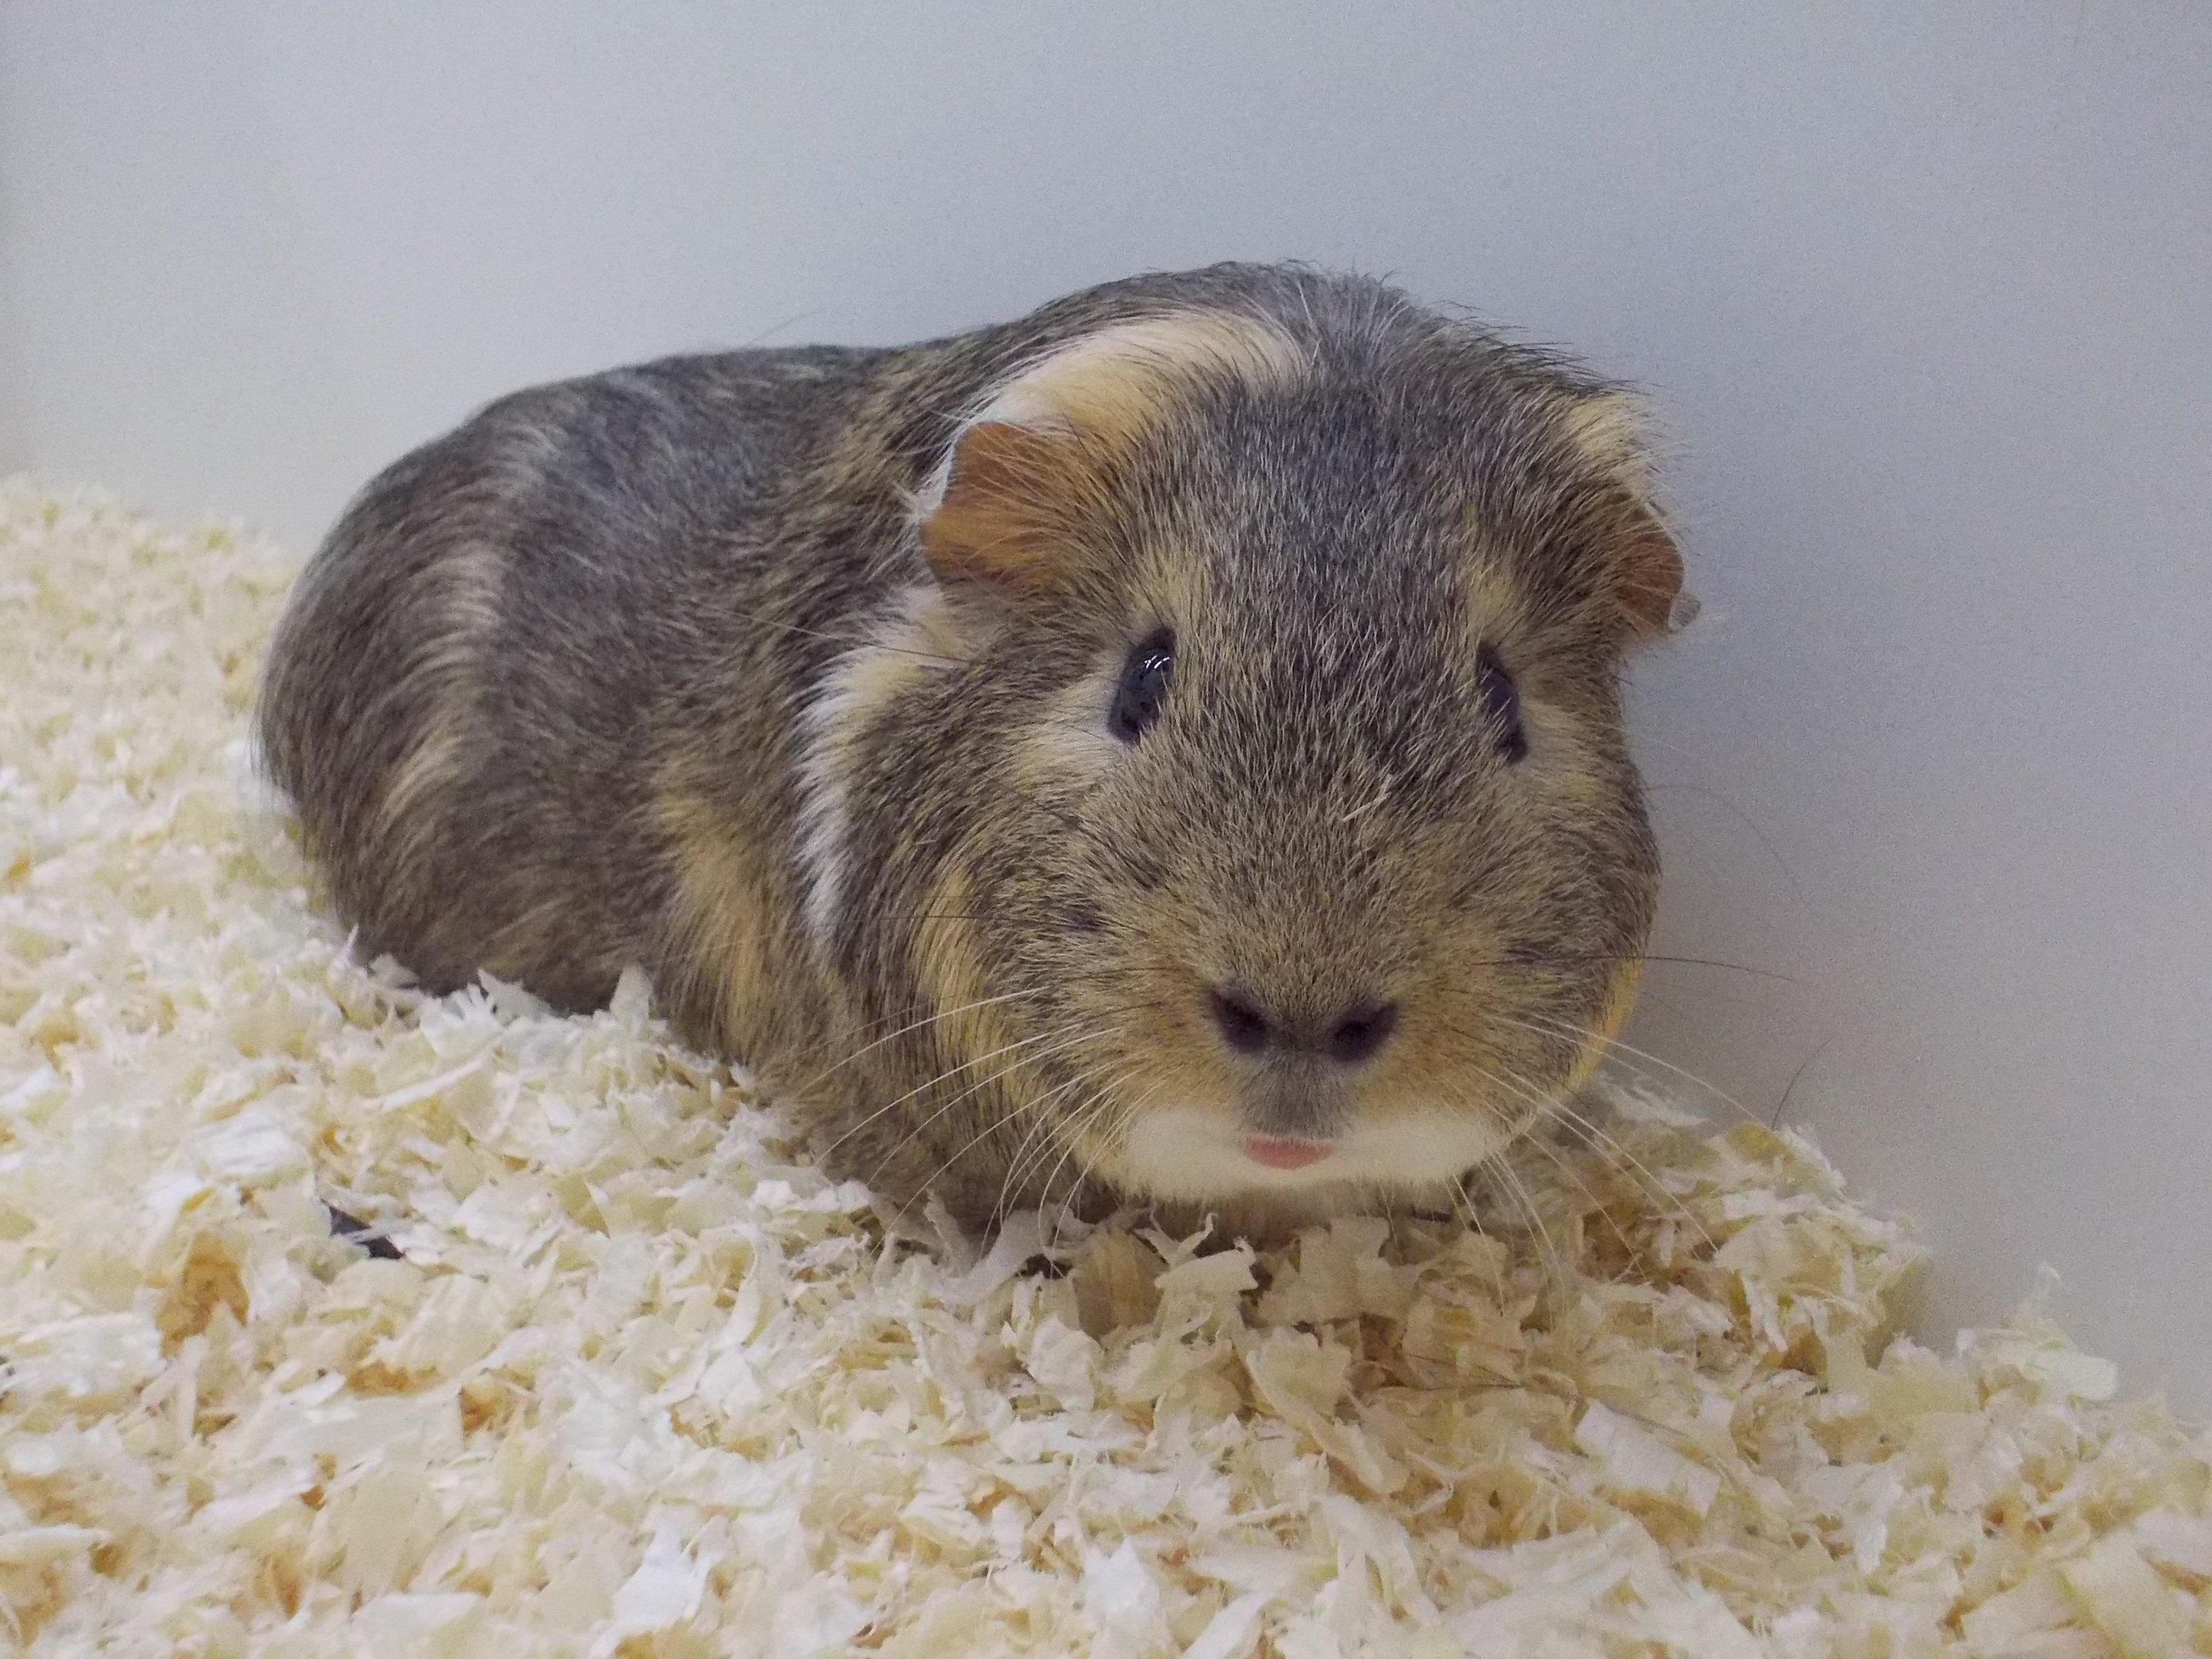 Fight Or Flight Sexual Cycle Determines The Behaviour Of Female Guinea Pigs